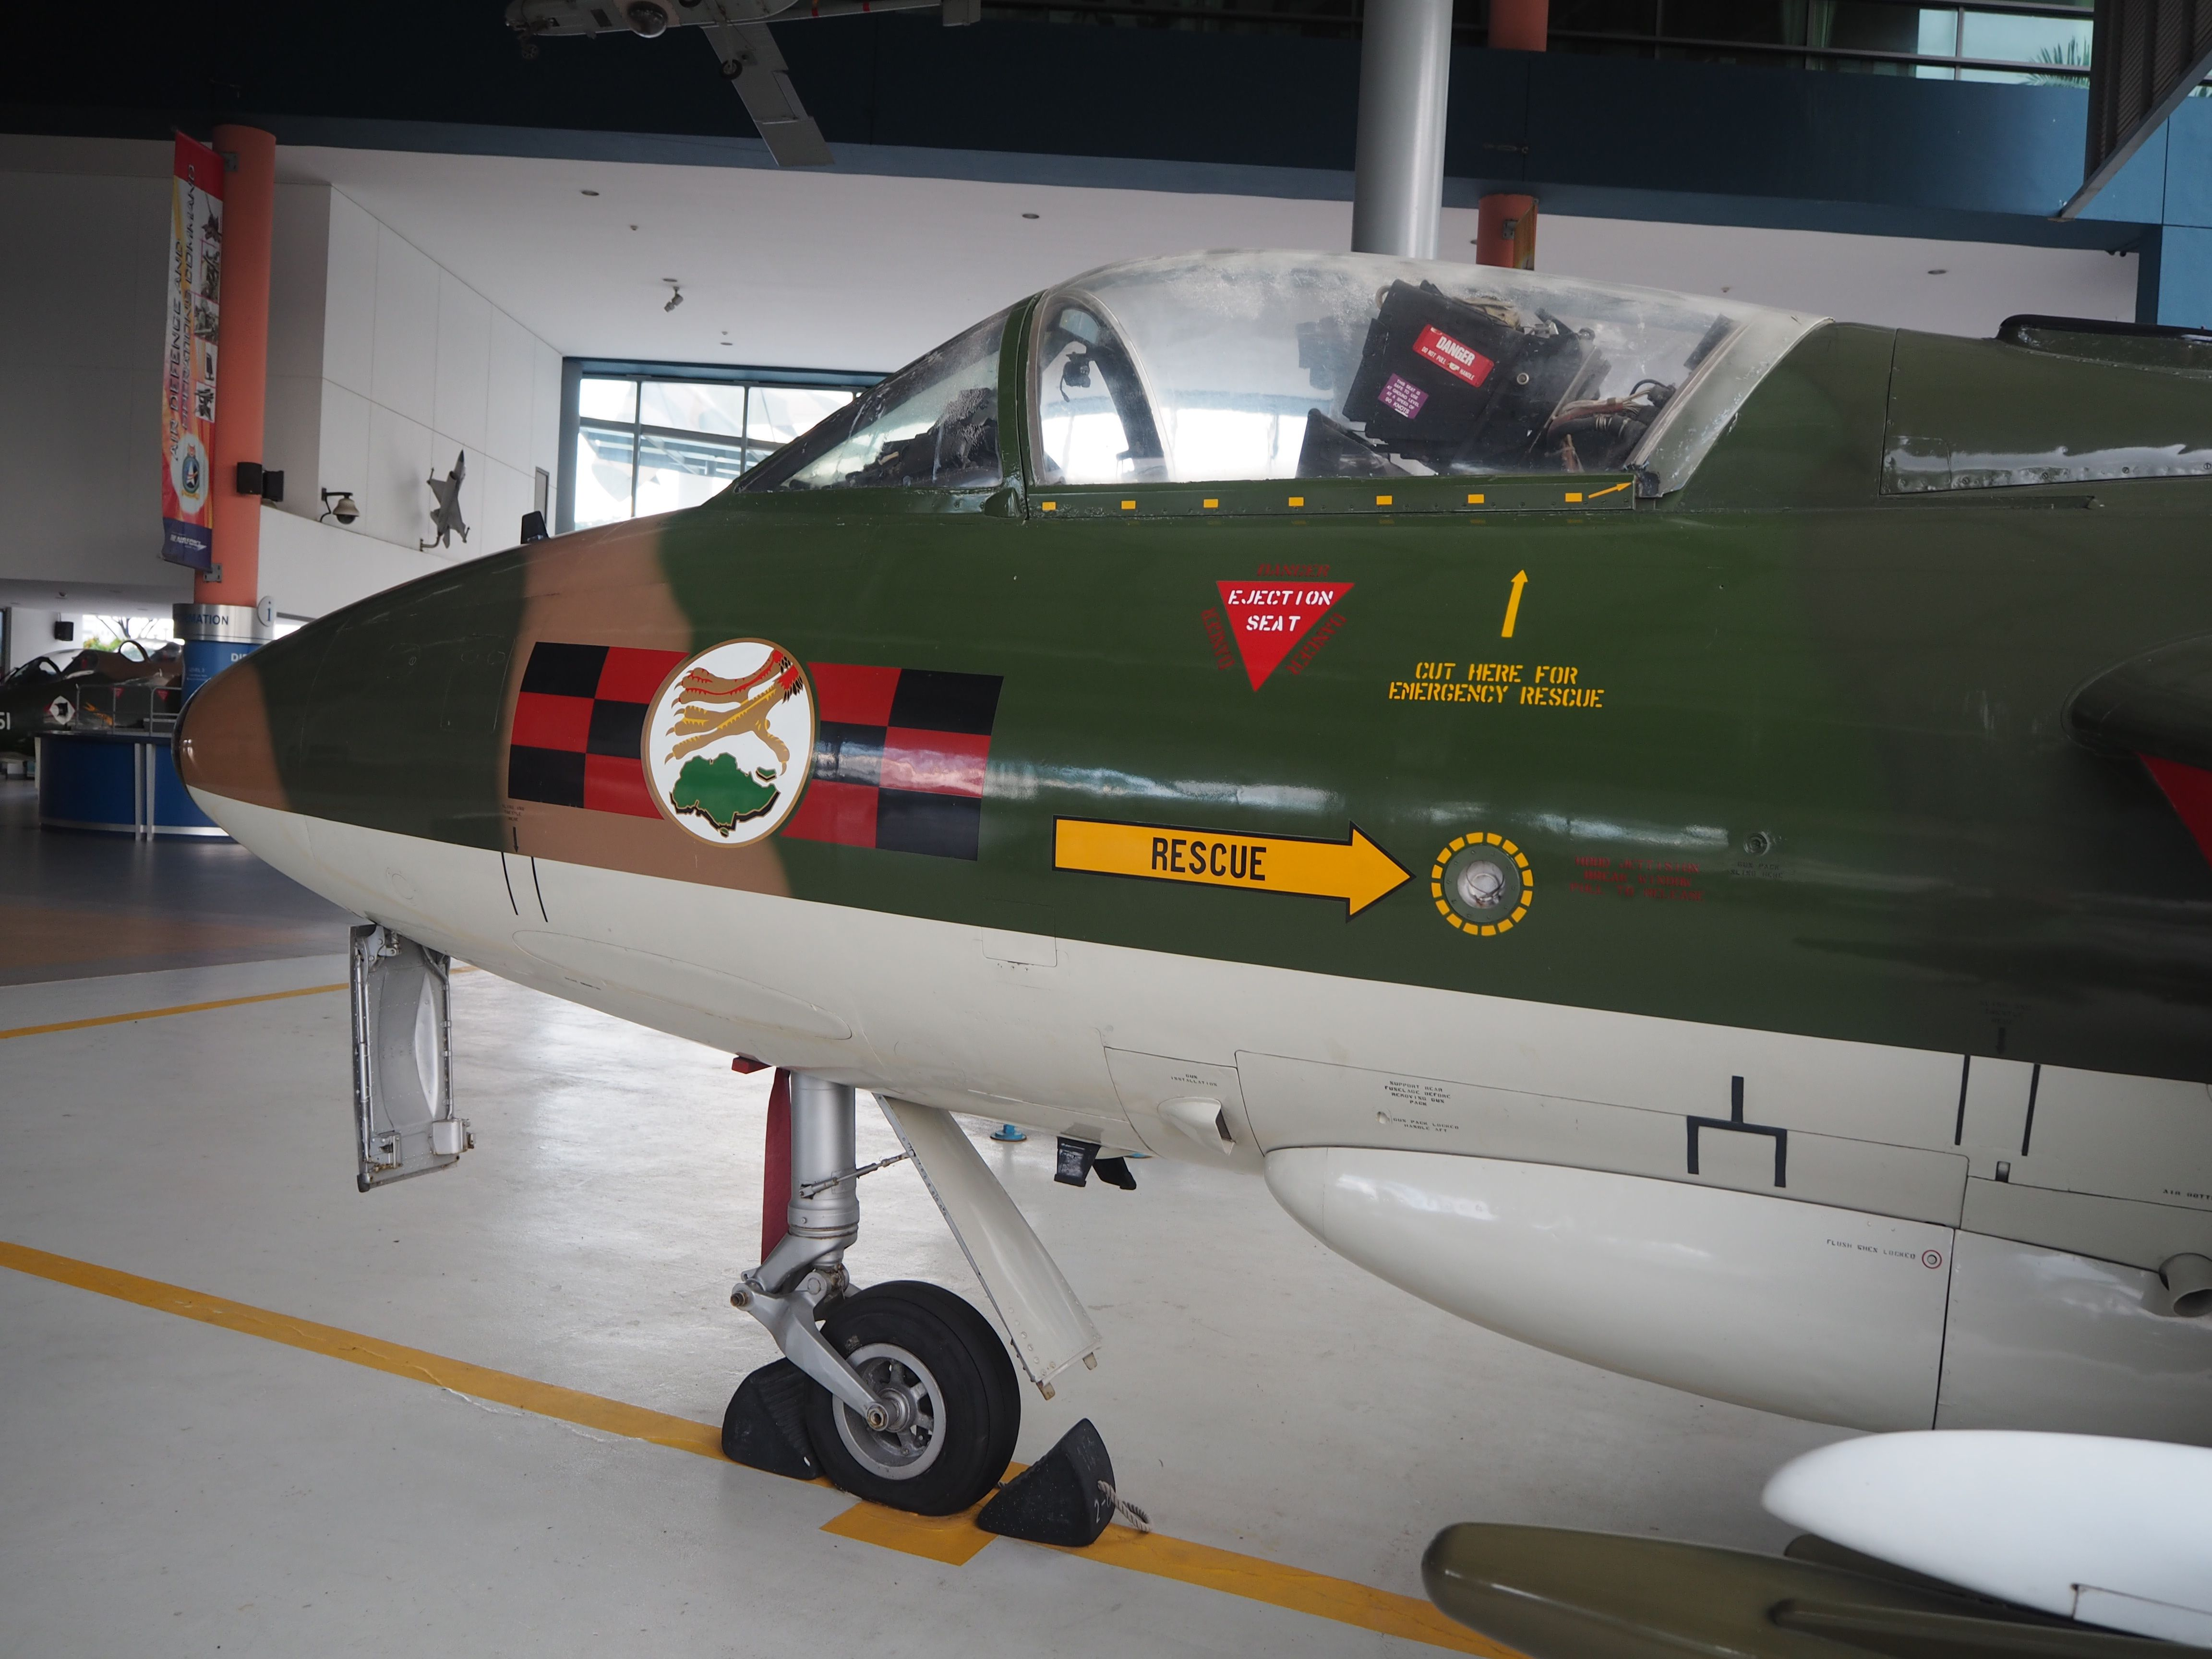 Hawker Hunter of the RSAF 140 Squadron, seen in the